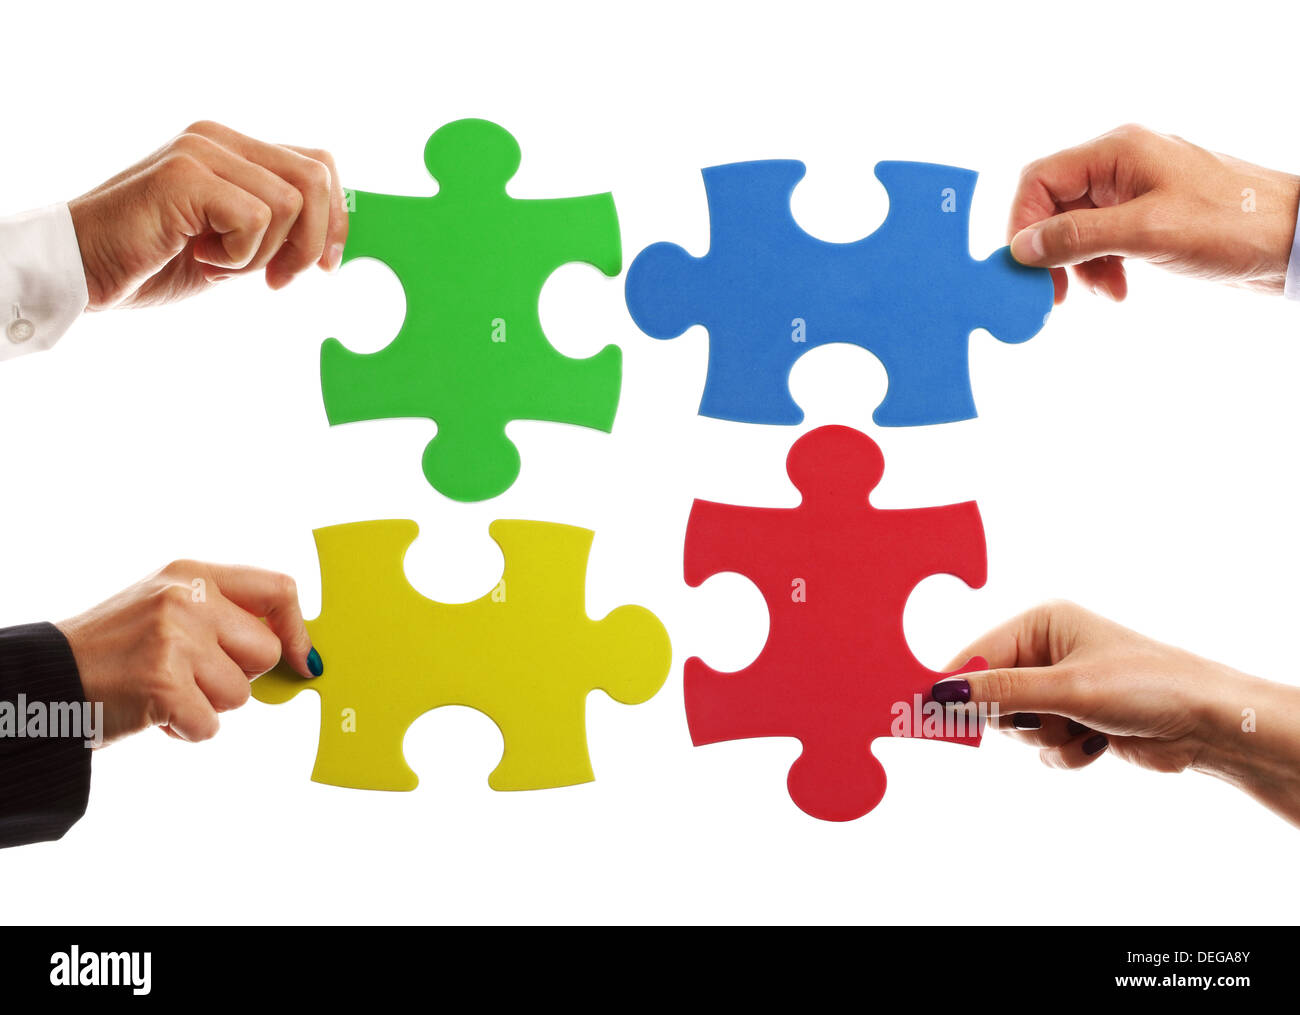 Teamwork strategy or partnership concept with business team holding jigsaw pieces together - Stock Image